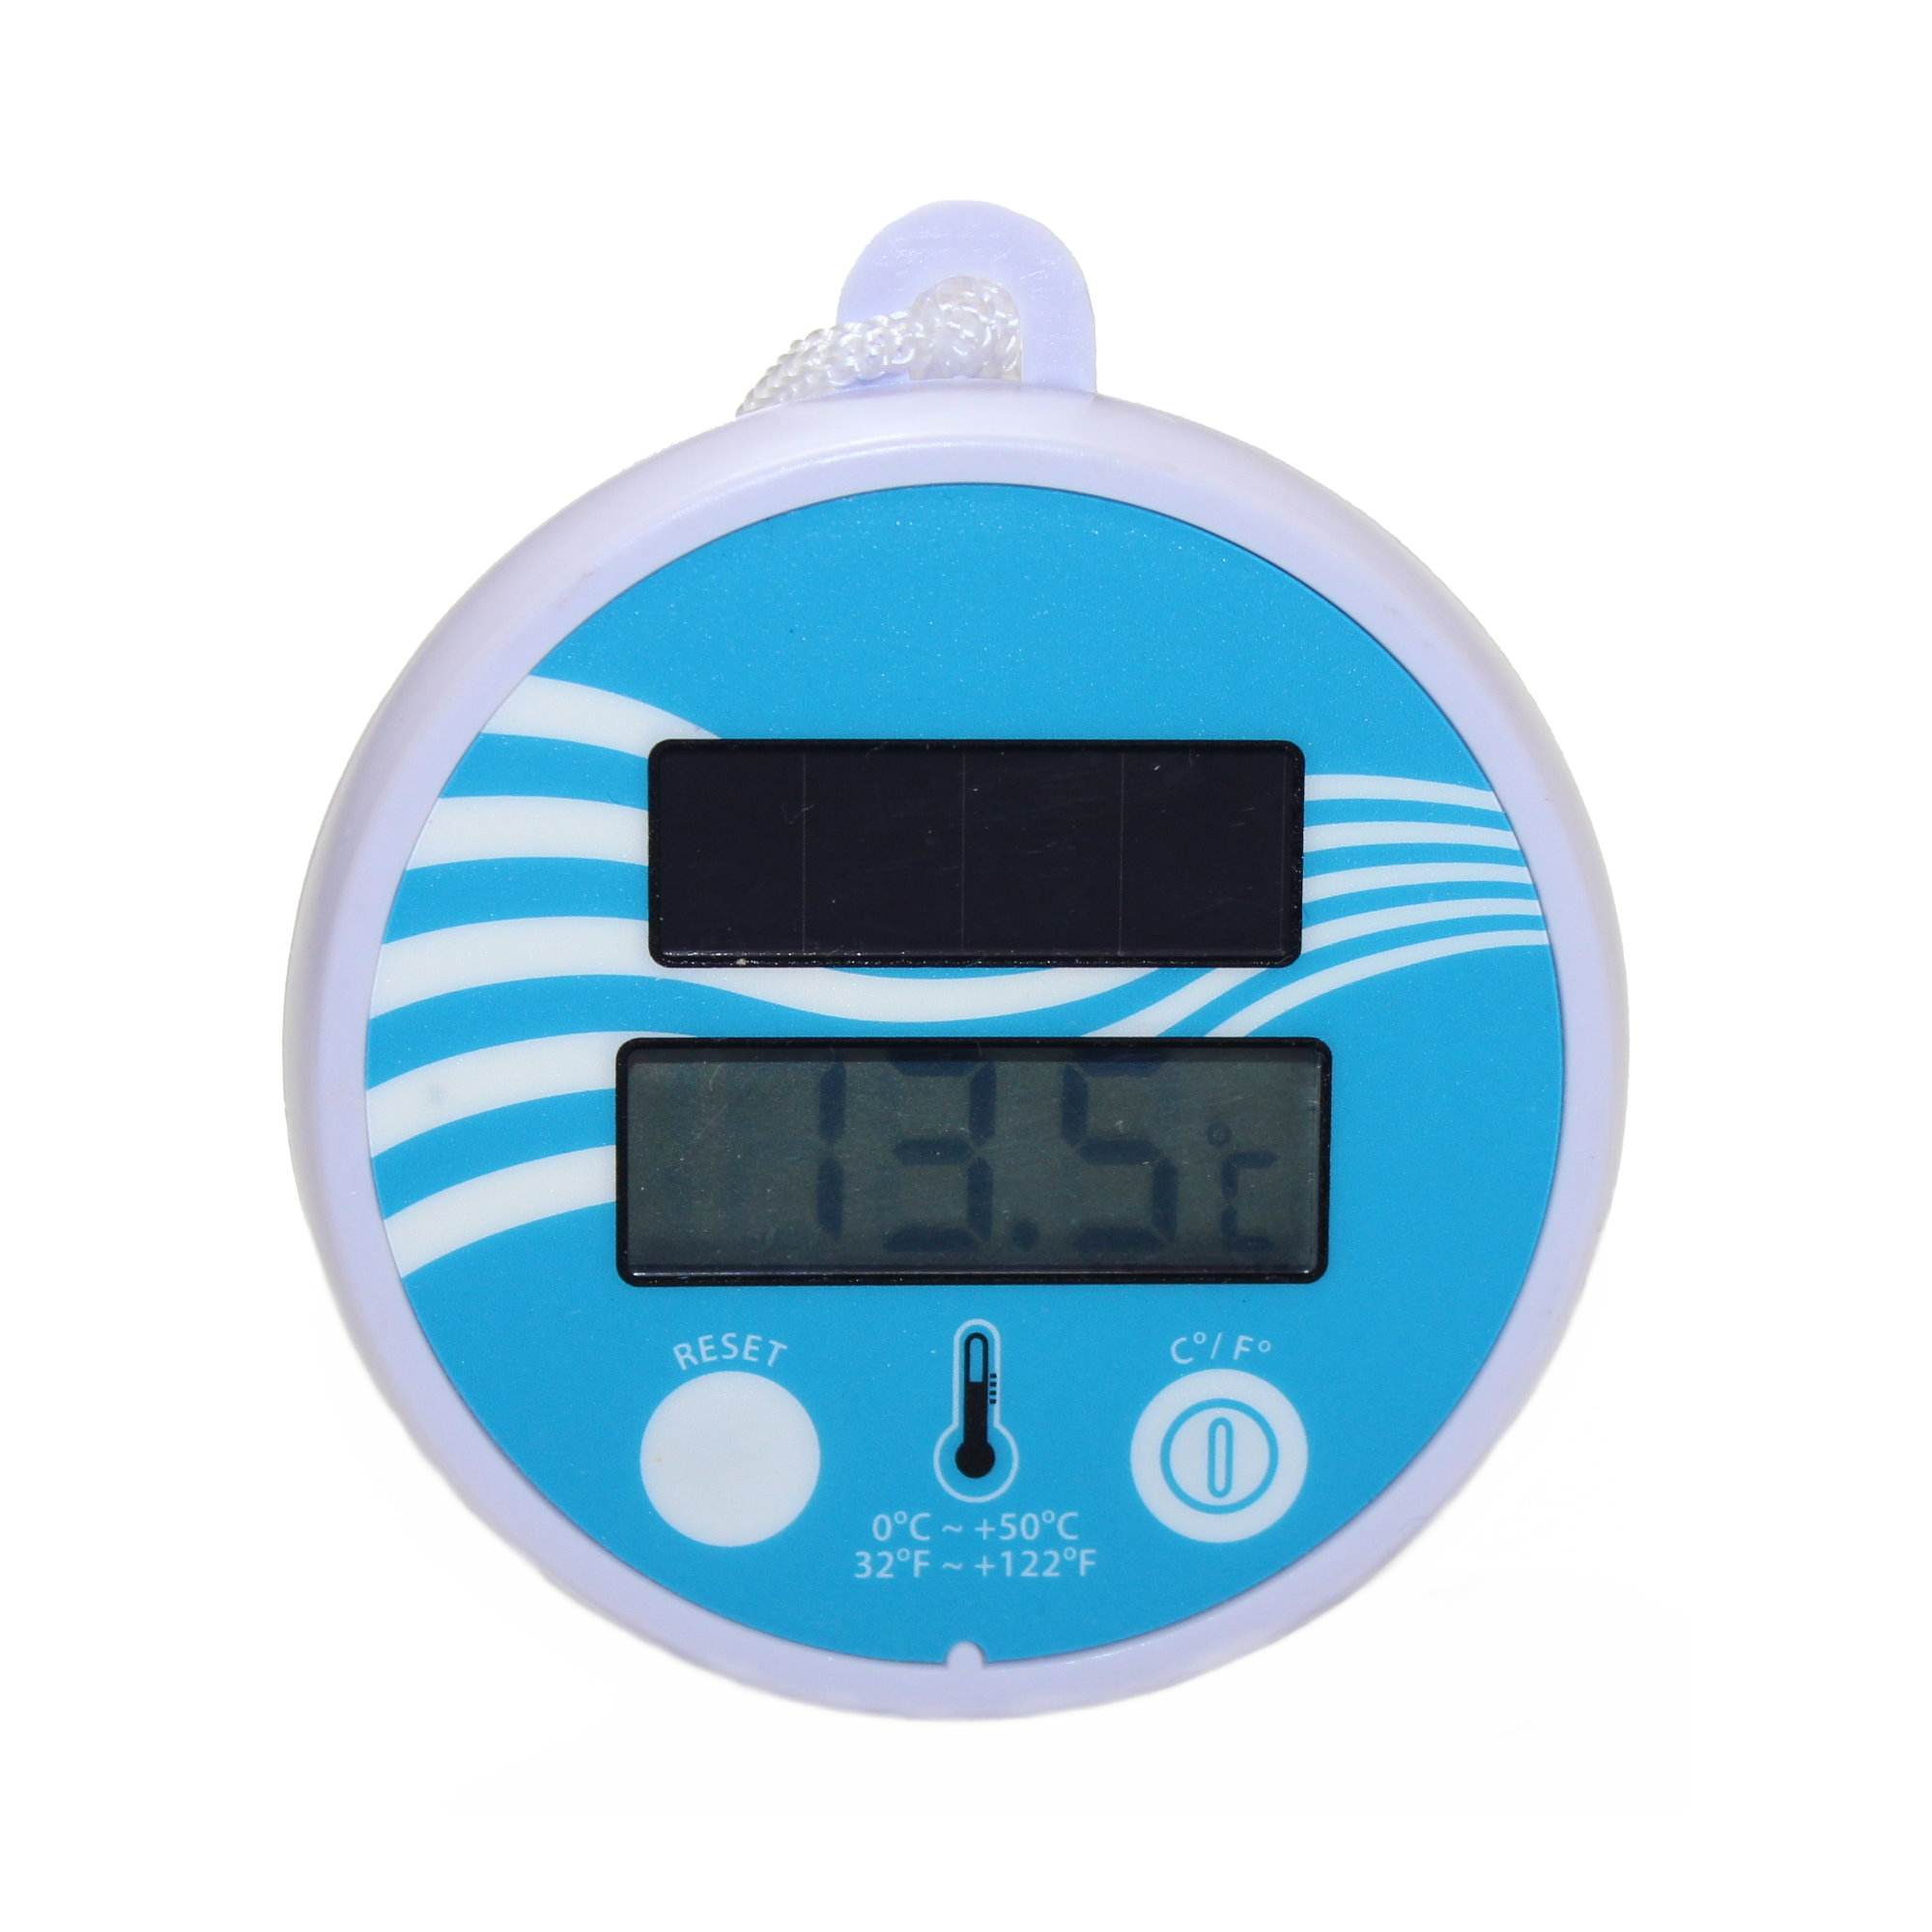 Pool Thermometer Rund Pool Chlor Shop Stahlwandpool Achtform Pool Chlor Shop